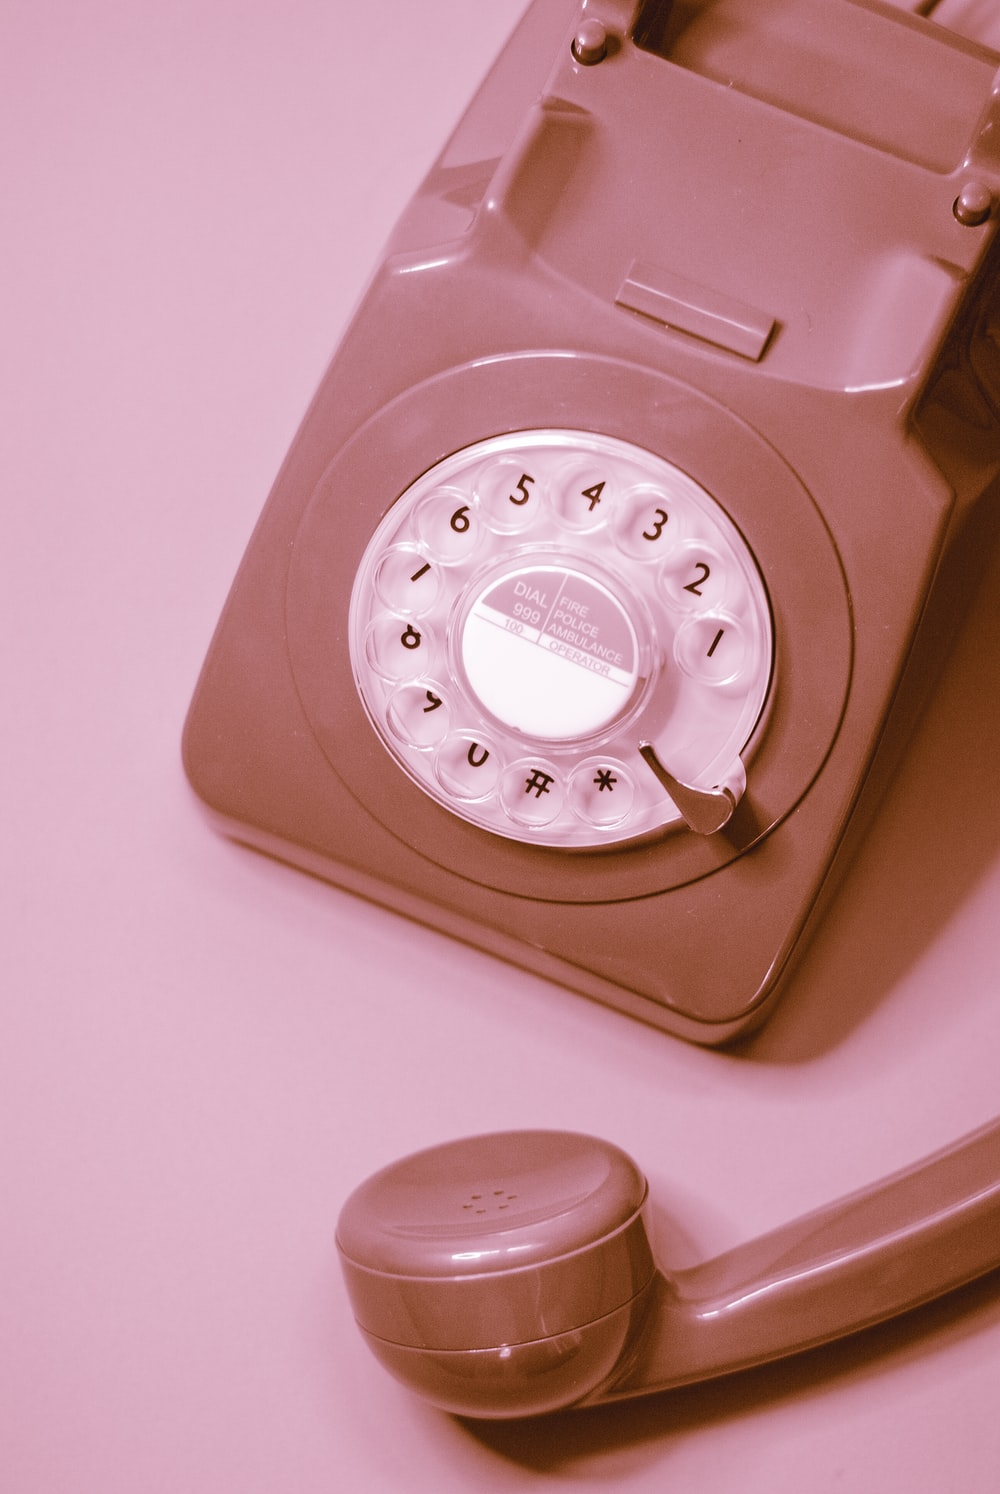 white rotary phone on pink table